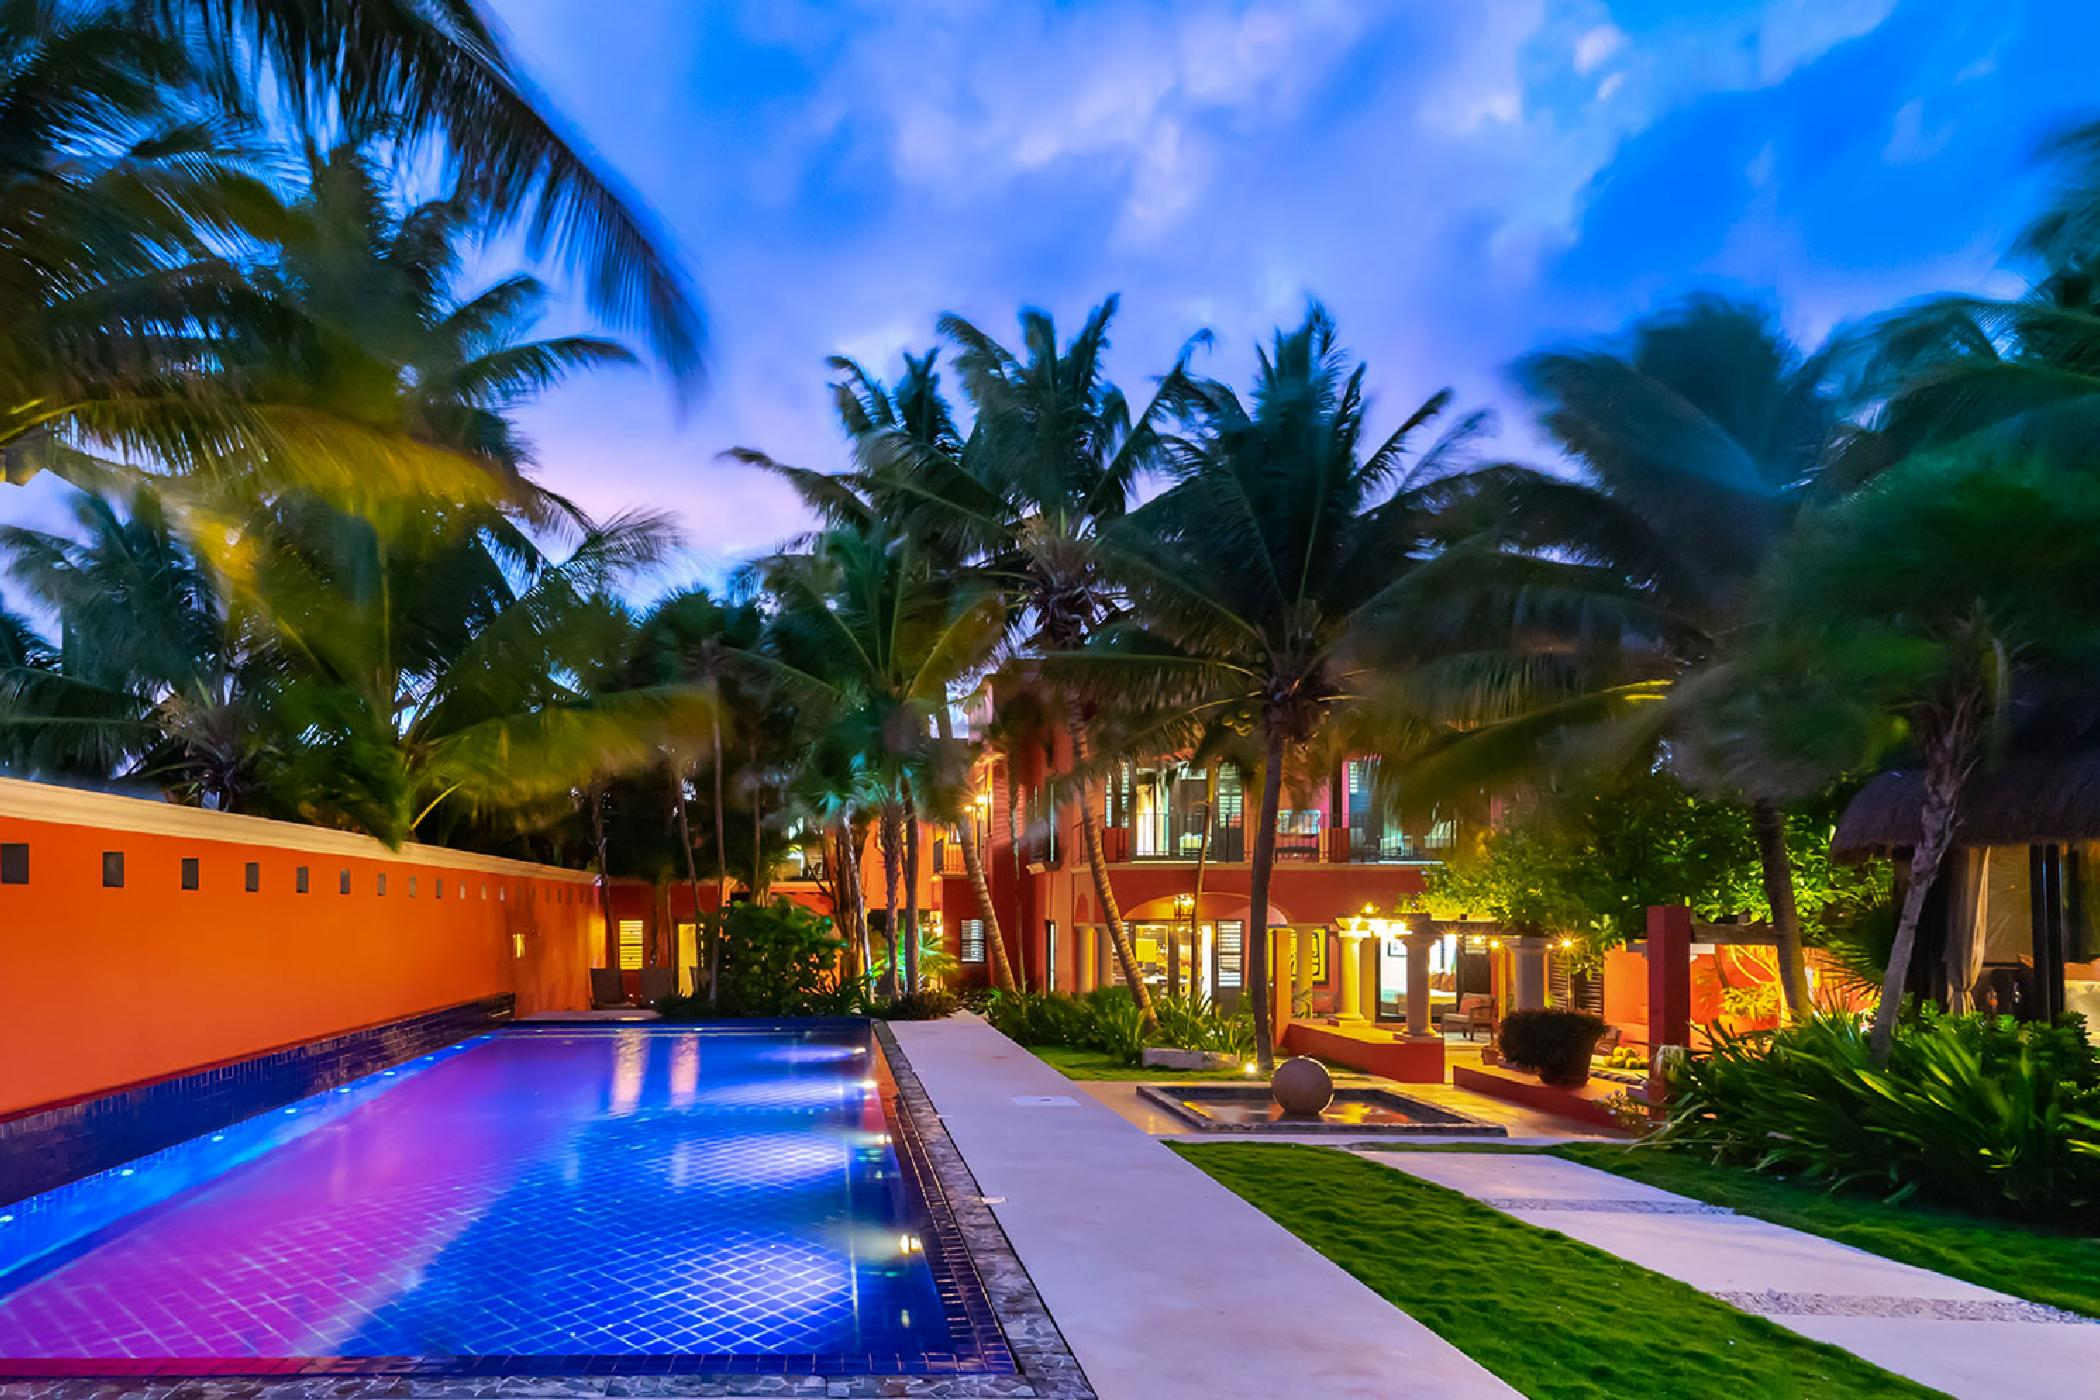 Lush, tropical Soliman Bay oceanfront 6 BDR estate; private beach, exquisite pool, indoor/outdoor living, high-end design